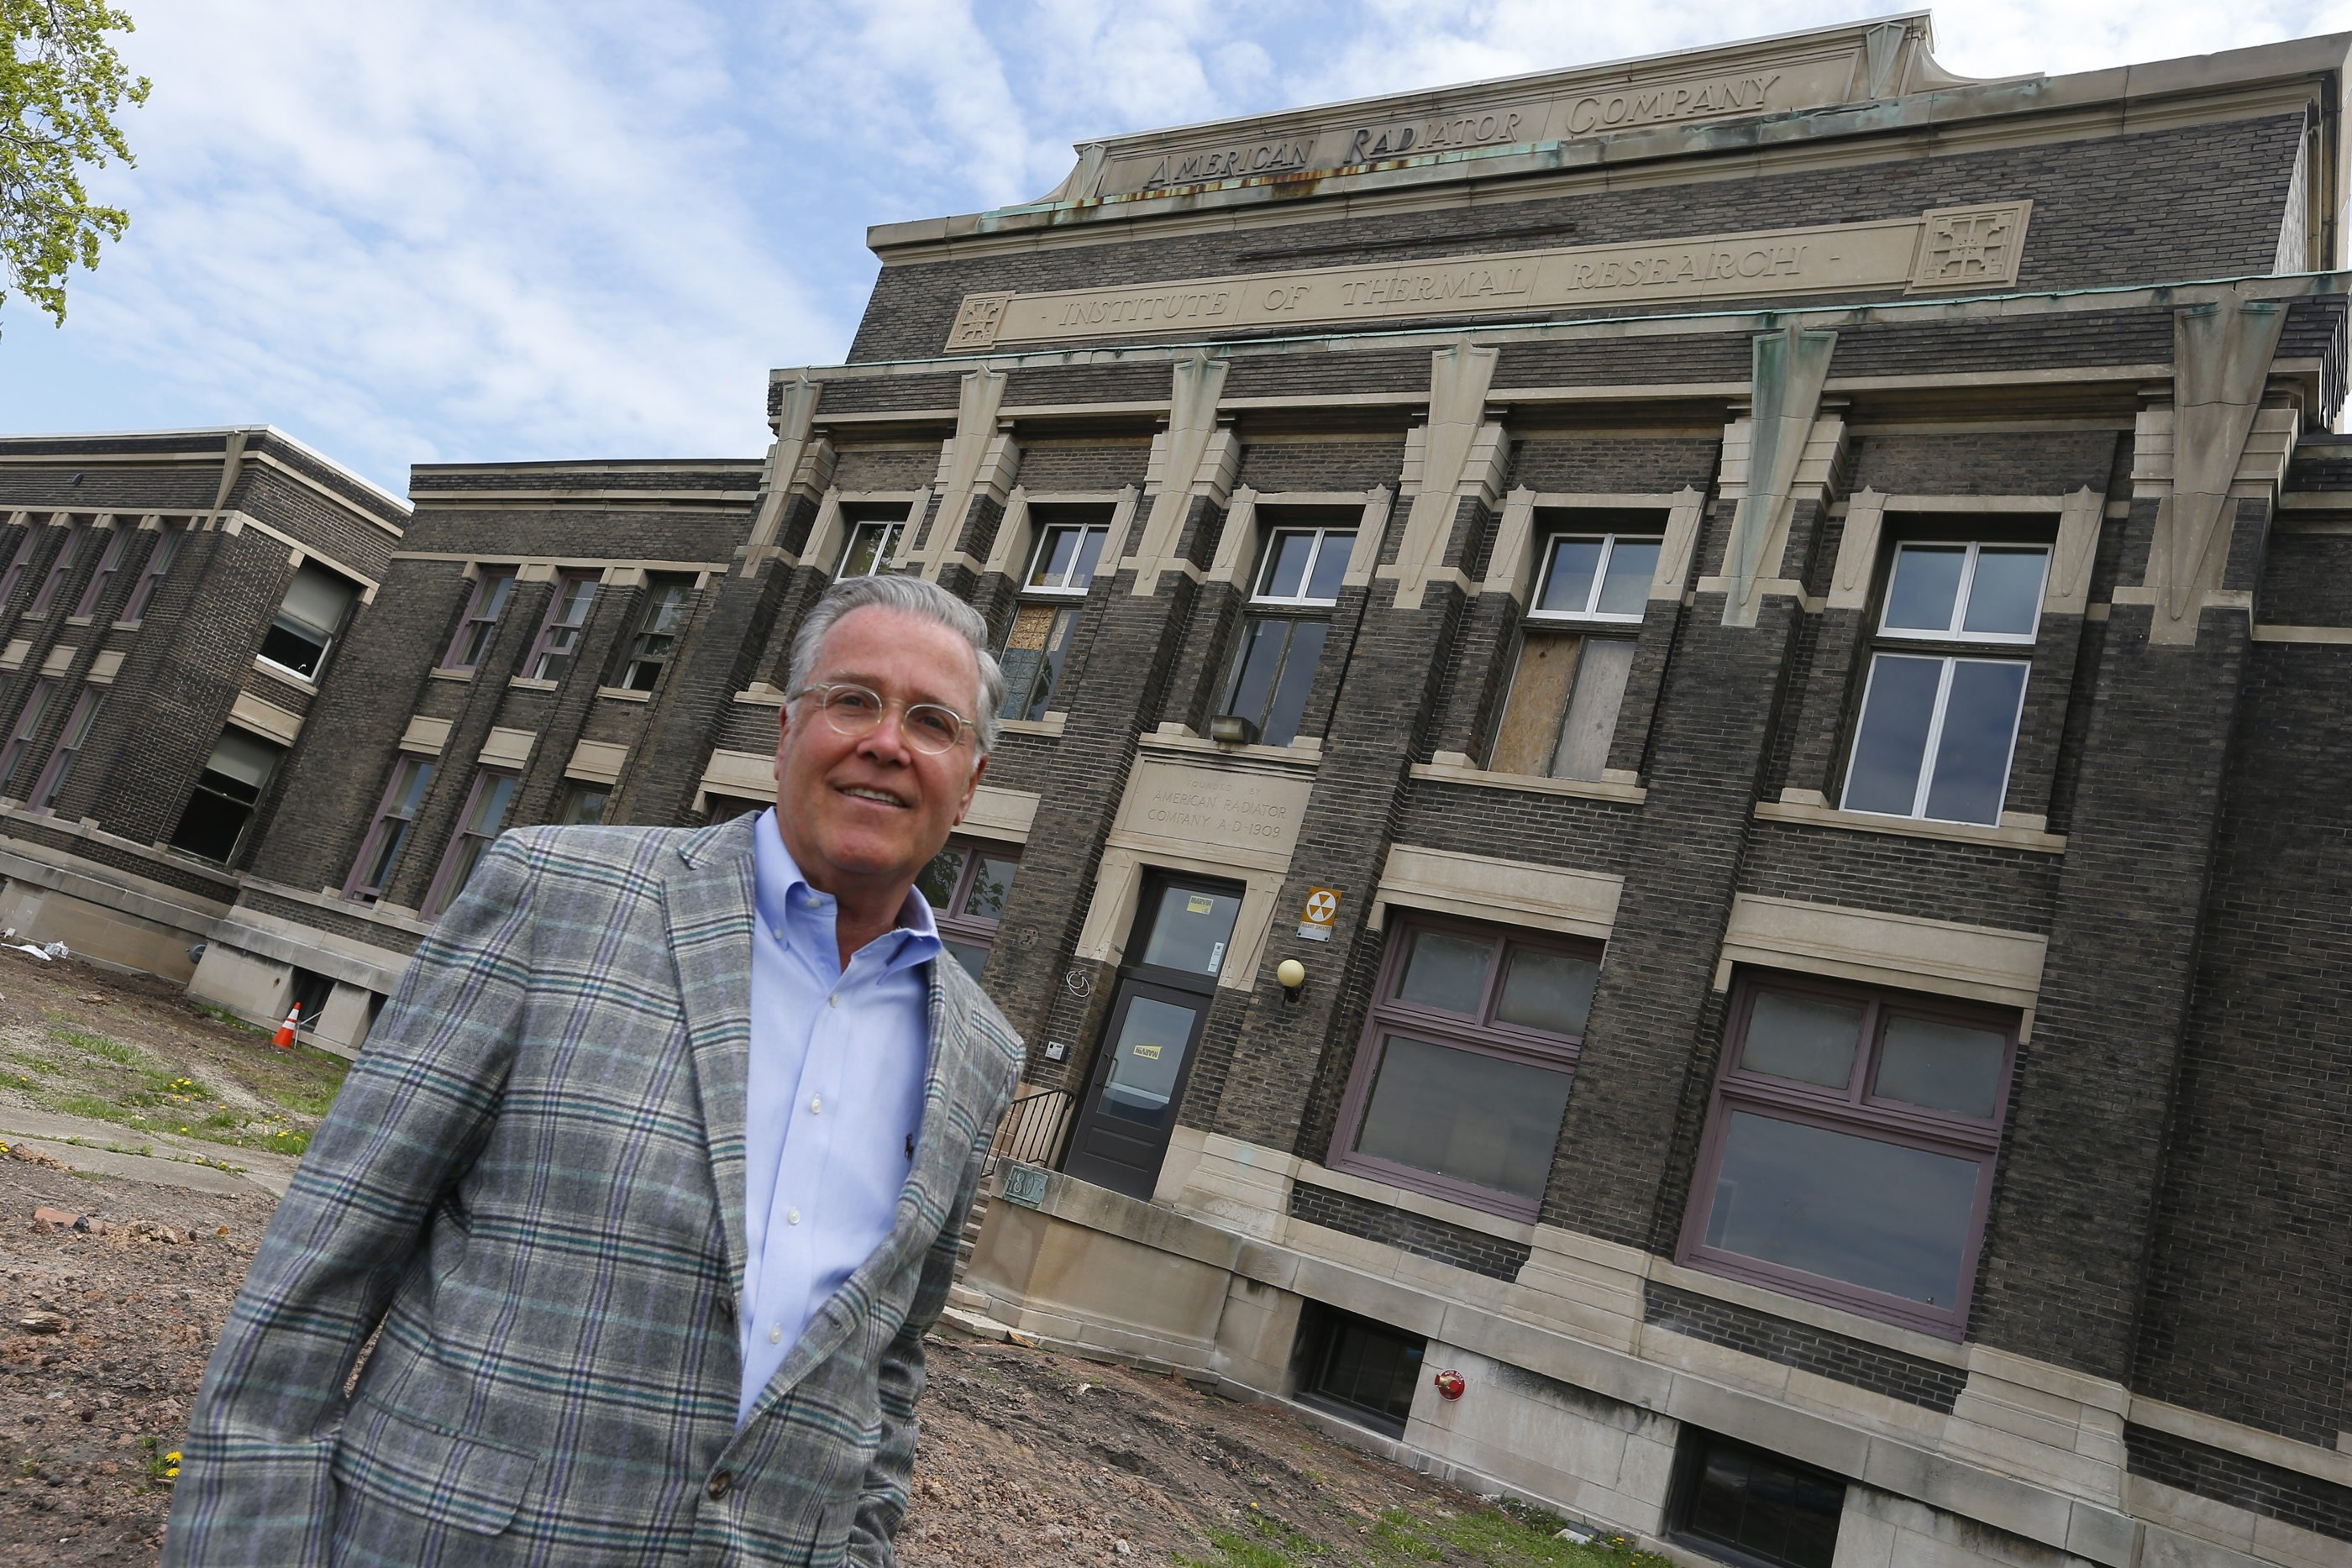 Rocco Termini, in front of his American Radiator Co. building project, has been an active user of historic tax credits for his projects. He credits the state and federal tax programs with helping fuel the redevelopment renaissance going on across Buffalo.